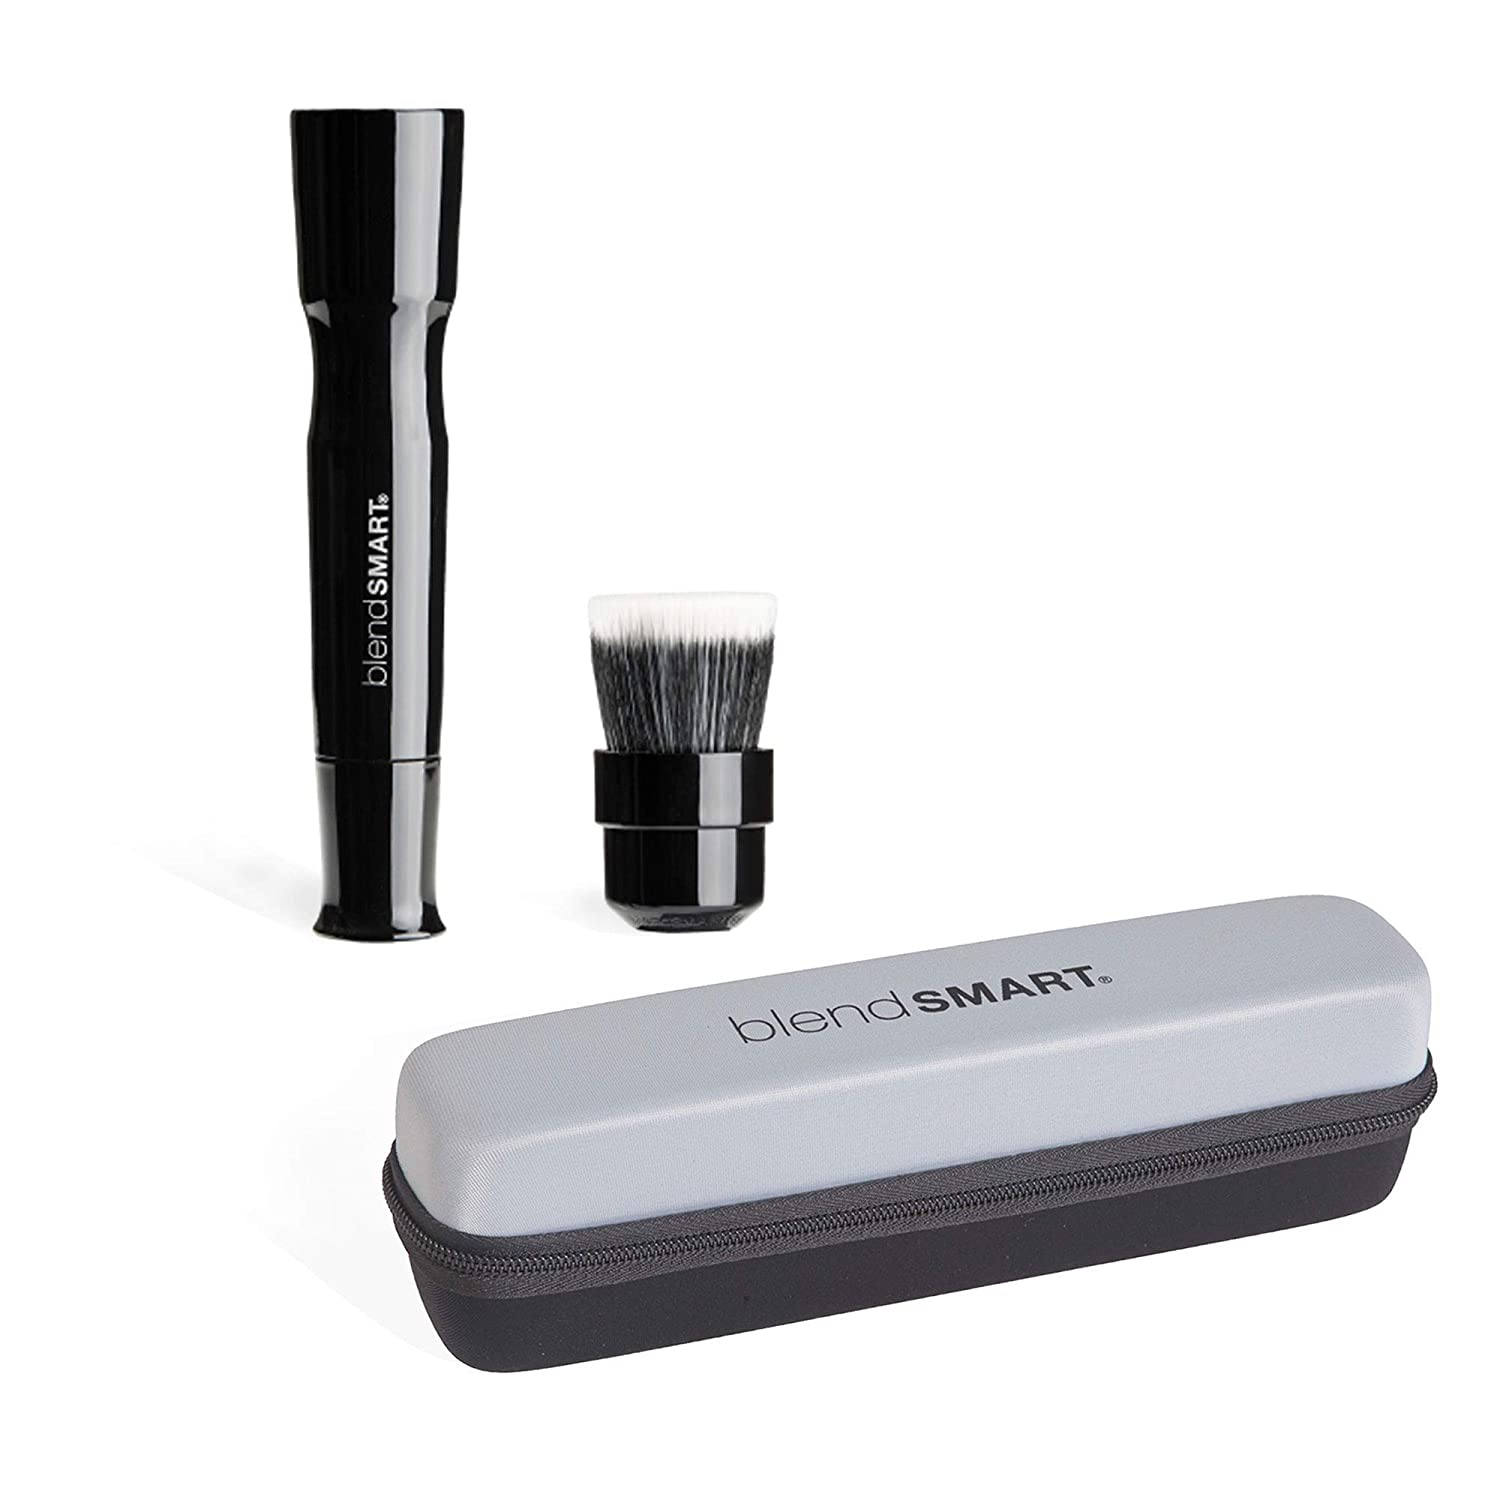 blendSMART2: Powered Foundation Makeup Brush With Spin Head For Blending, Contouring and Airbrush Finish with Travel Case